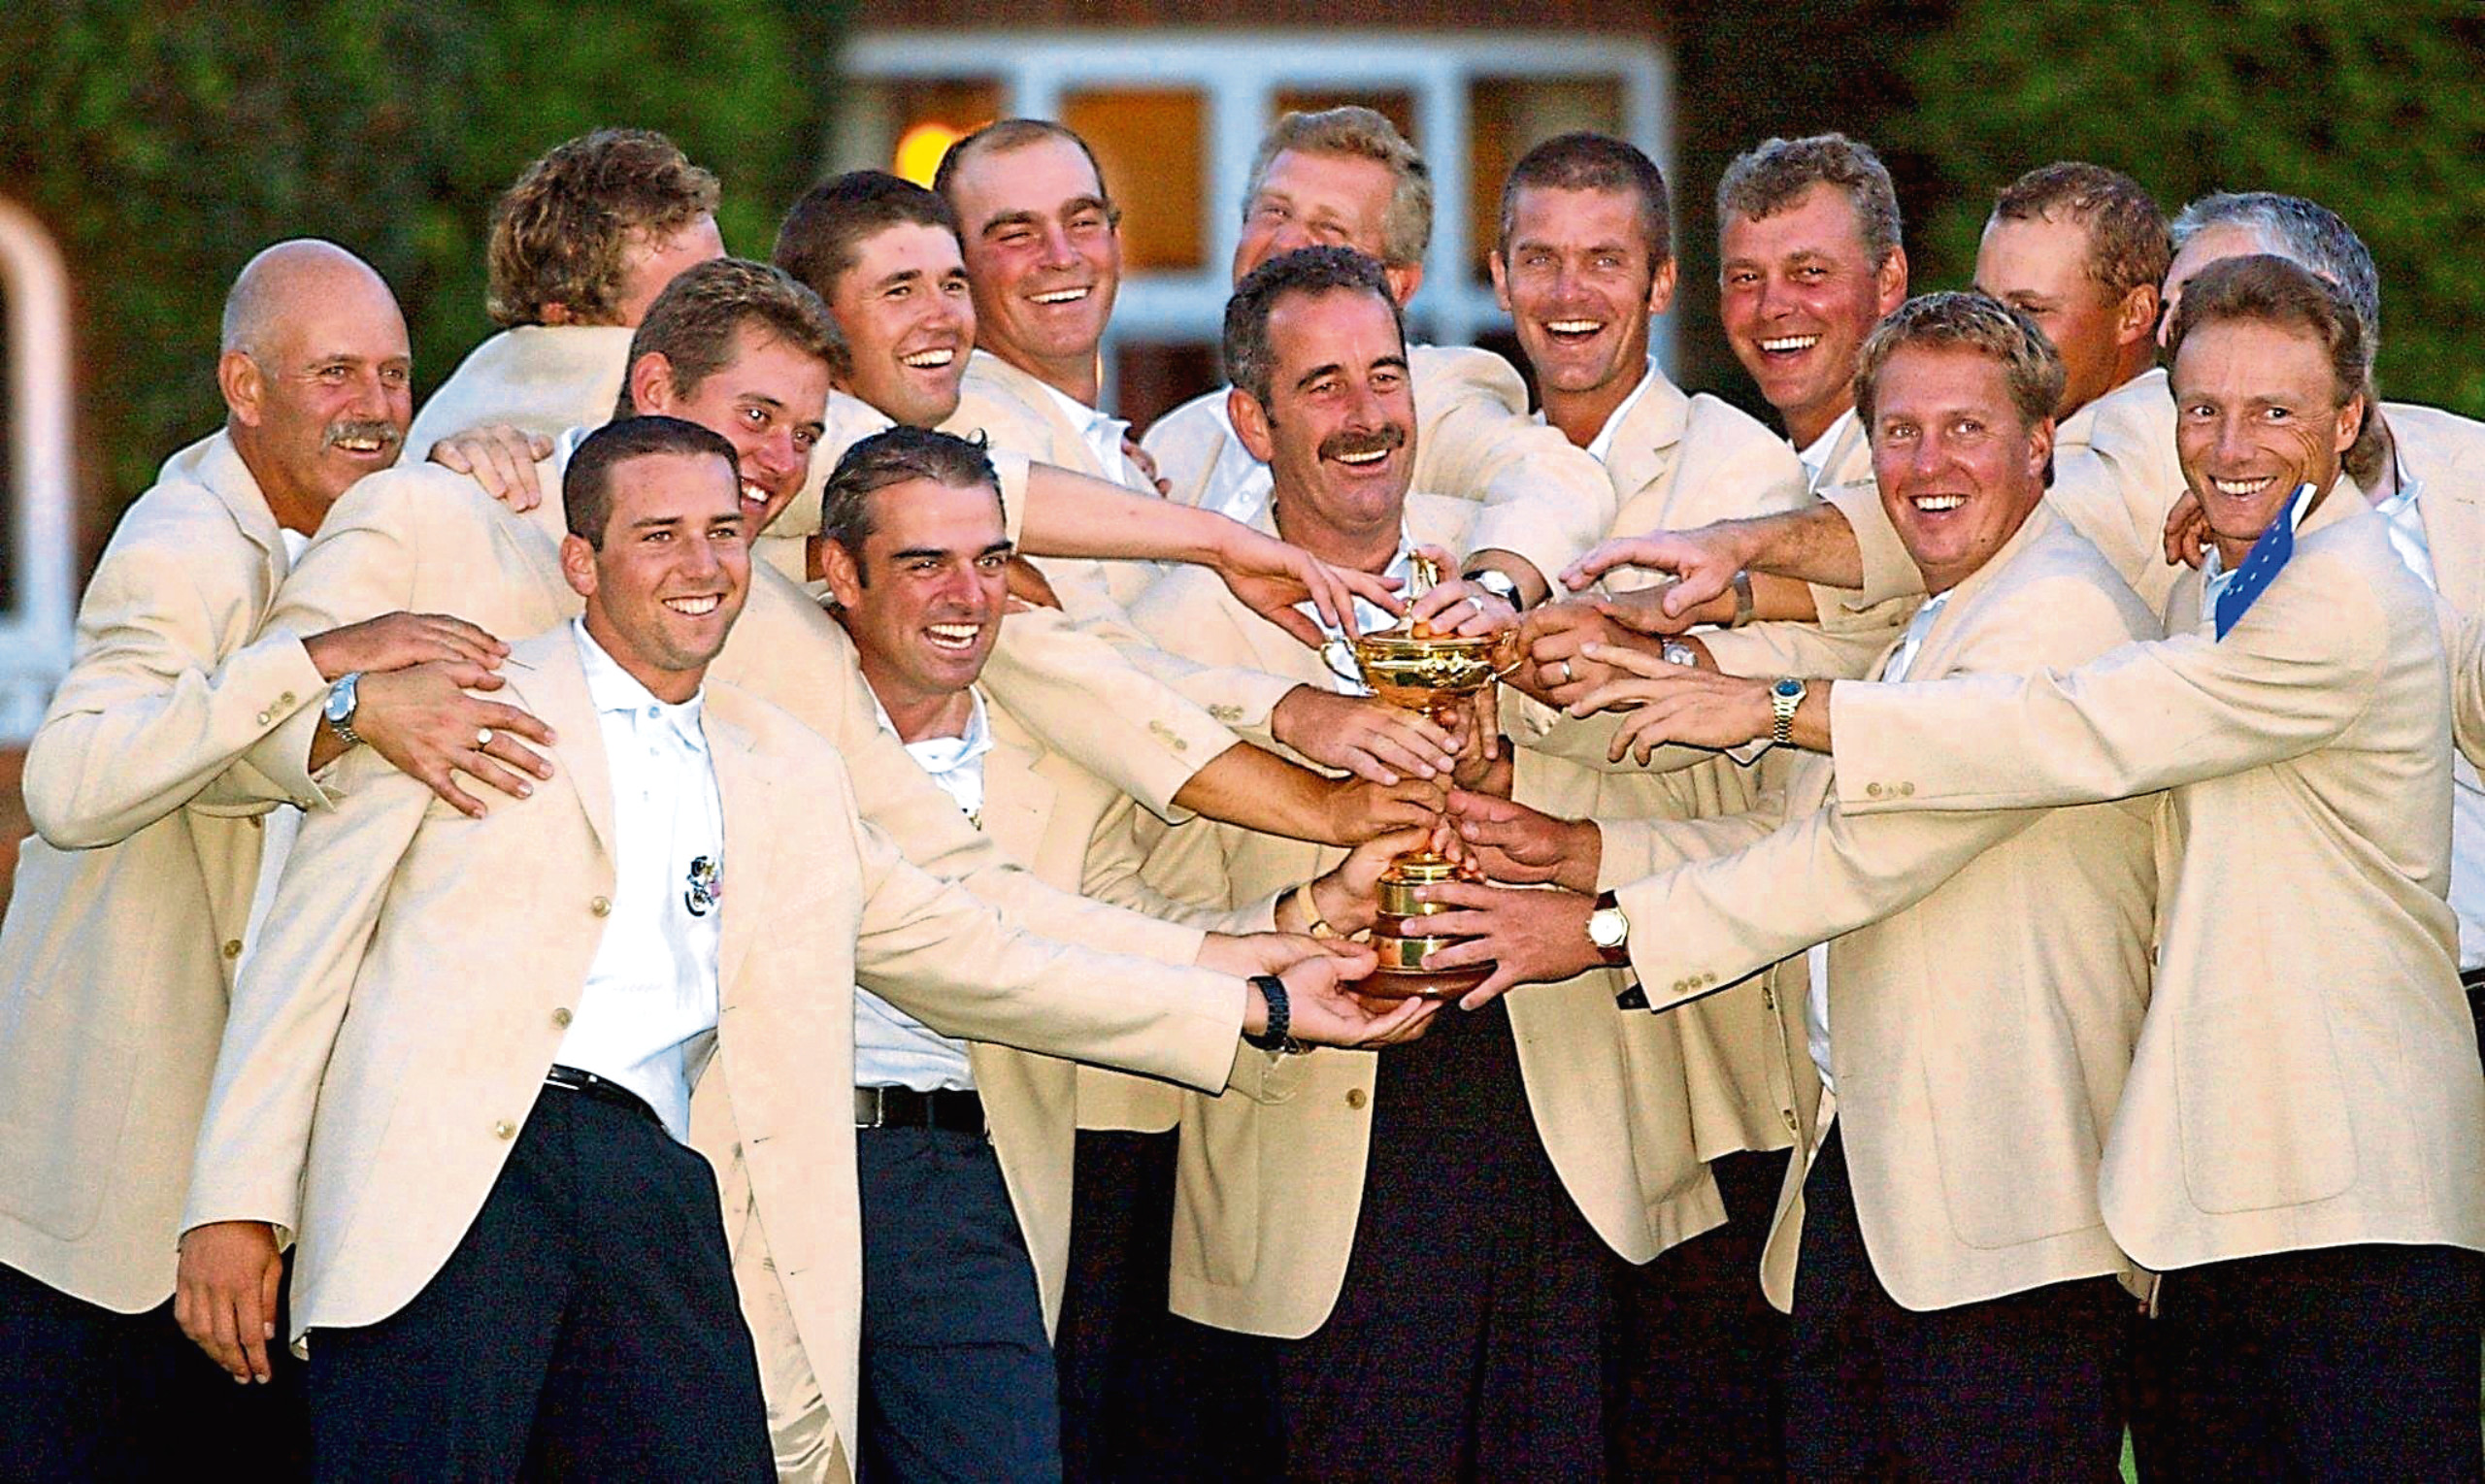 Mandatory Credit: Photo by Adrian Dennis/EPA/Shutterstock (7650925bk) Sutton Coldfield United Kingdom : European Team Captain Sam Torrance (c) Hold the Ryder Cup As His Team Surrounds Him After They Won the 34th Ryder Cup 29 September 2002 on the Brabazon Course at the Belfry in Sutton Coldfield England the Europeans Won the Ryder Cup15 1/2 To12 1/2 VARIOUS - Sep 2002